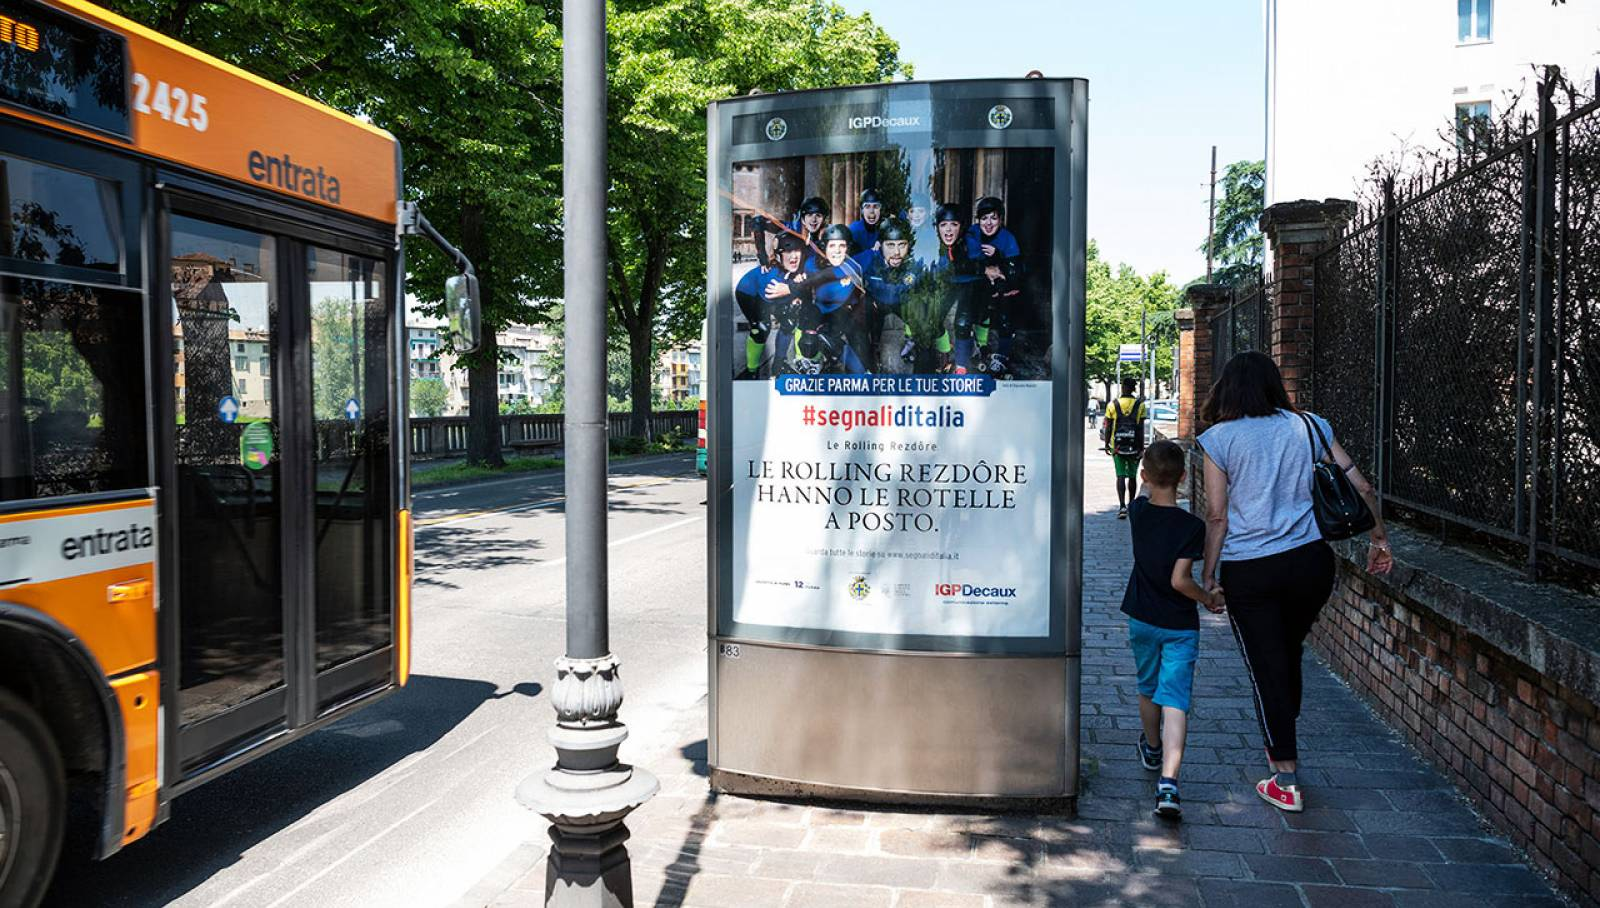 OOH advertising IGPDecaux in Parma for the Segnali d'Italia thanks campaign